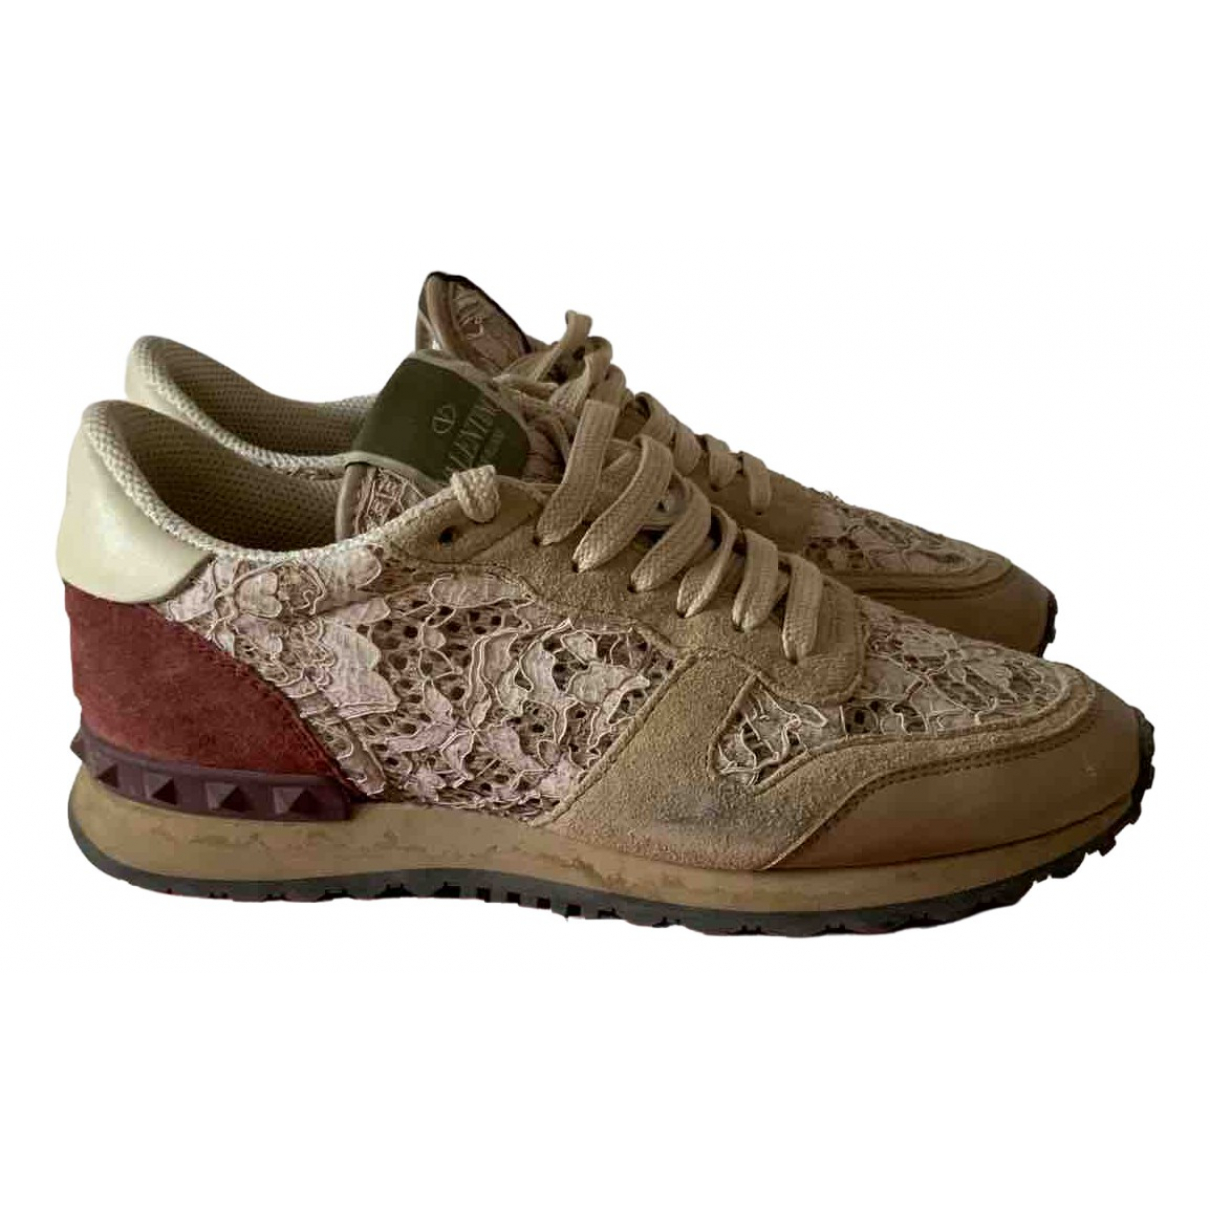 Valentino Garavani Rockrunner Beige Leather Trainers for Women 36 EU